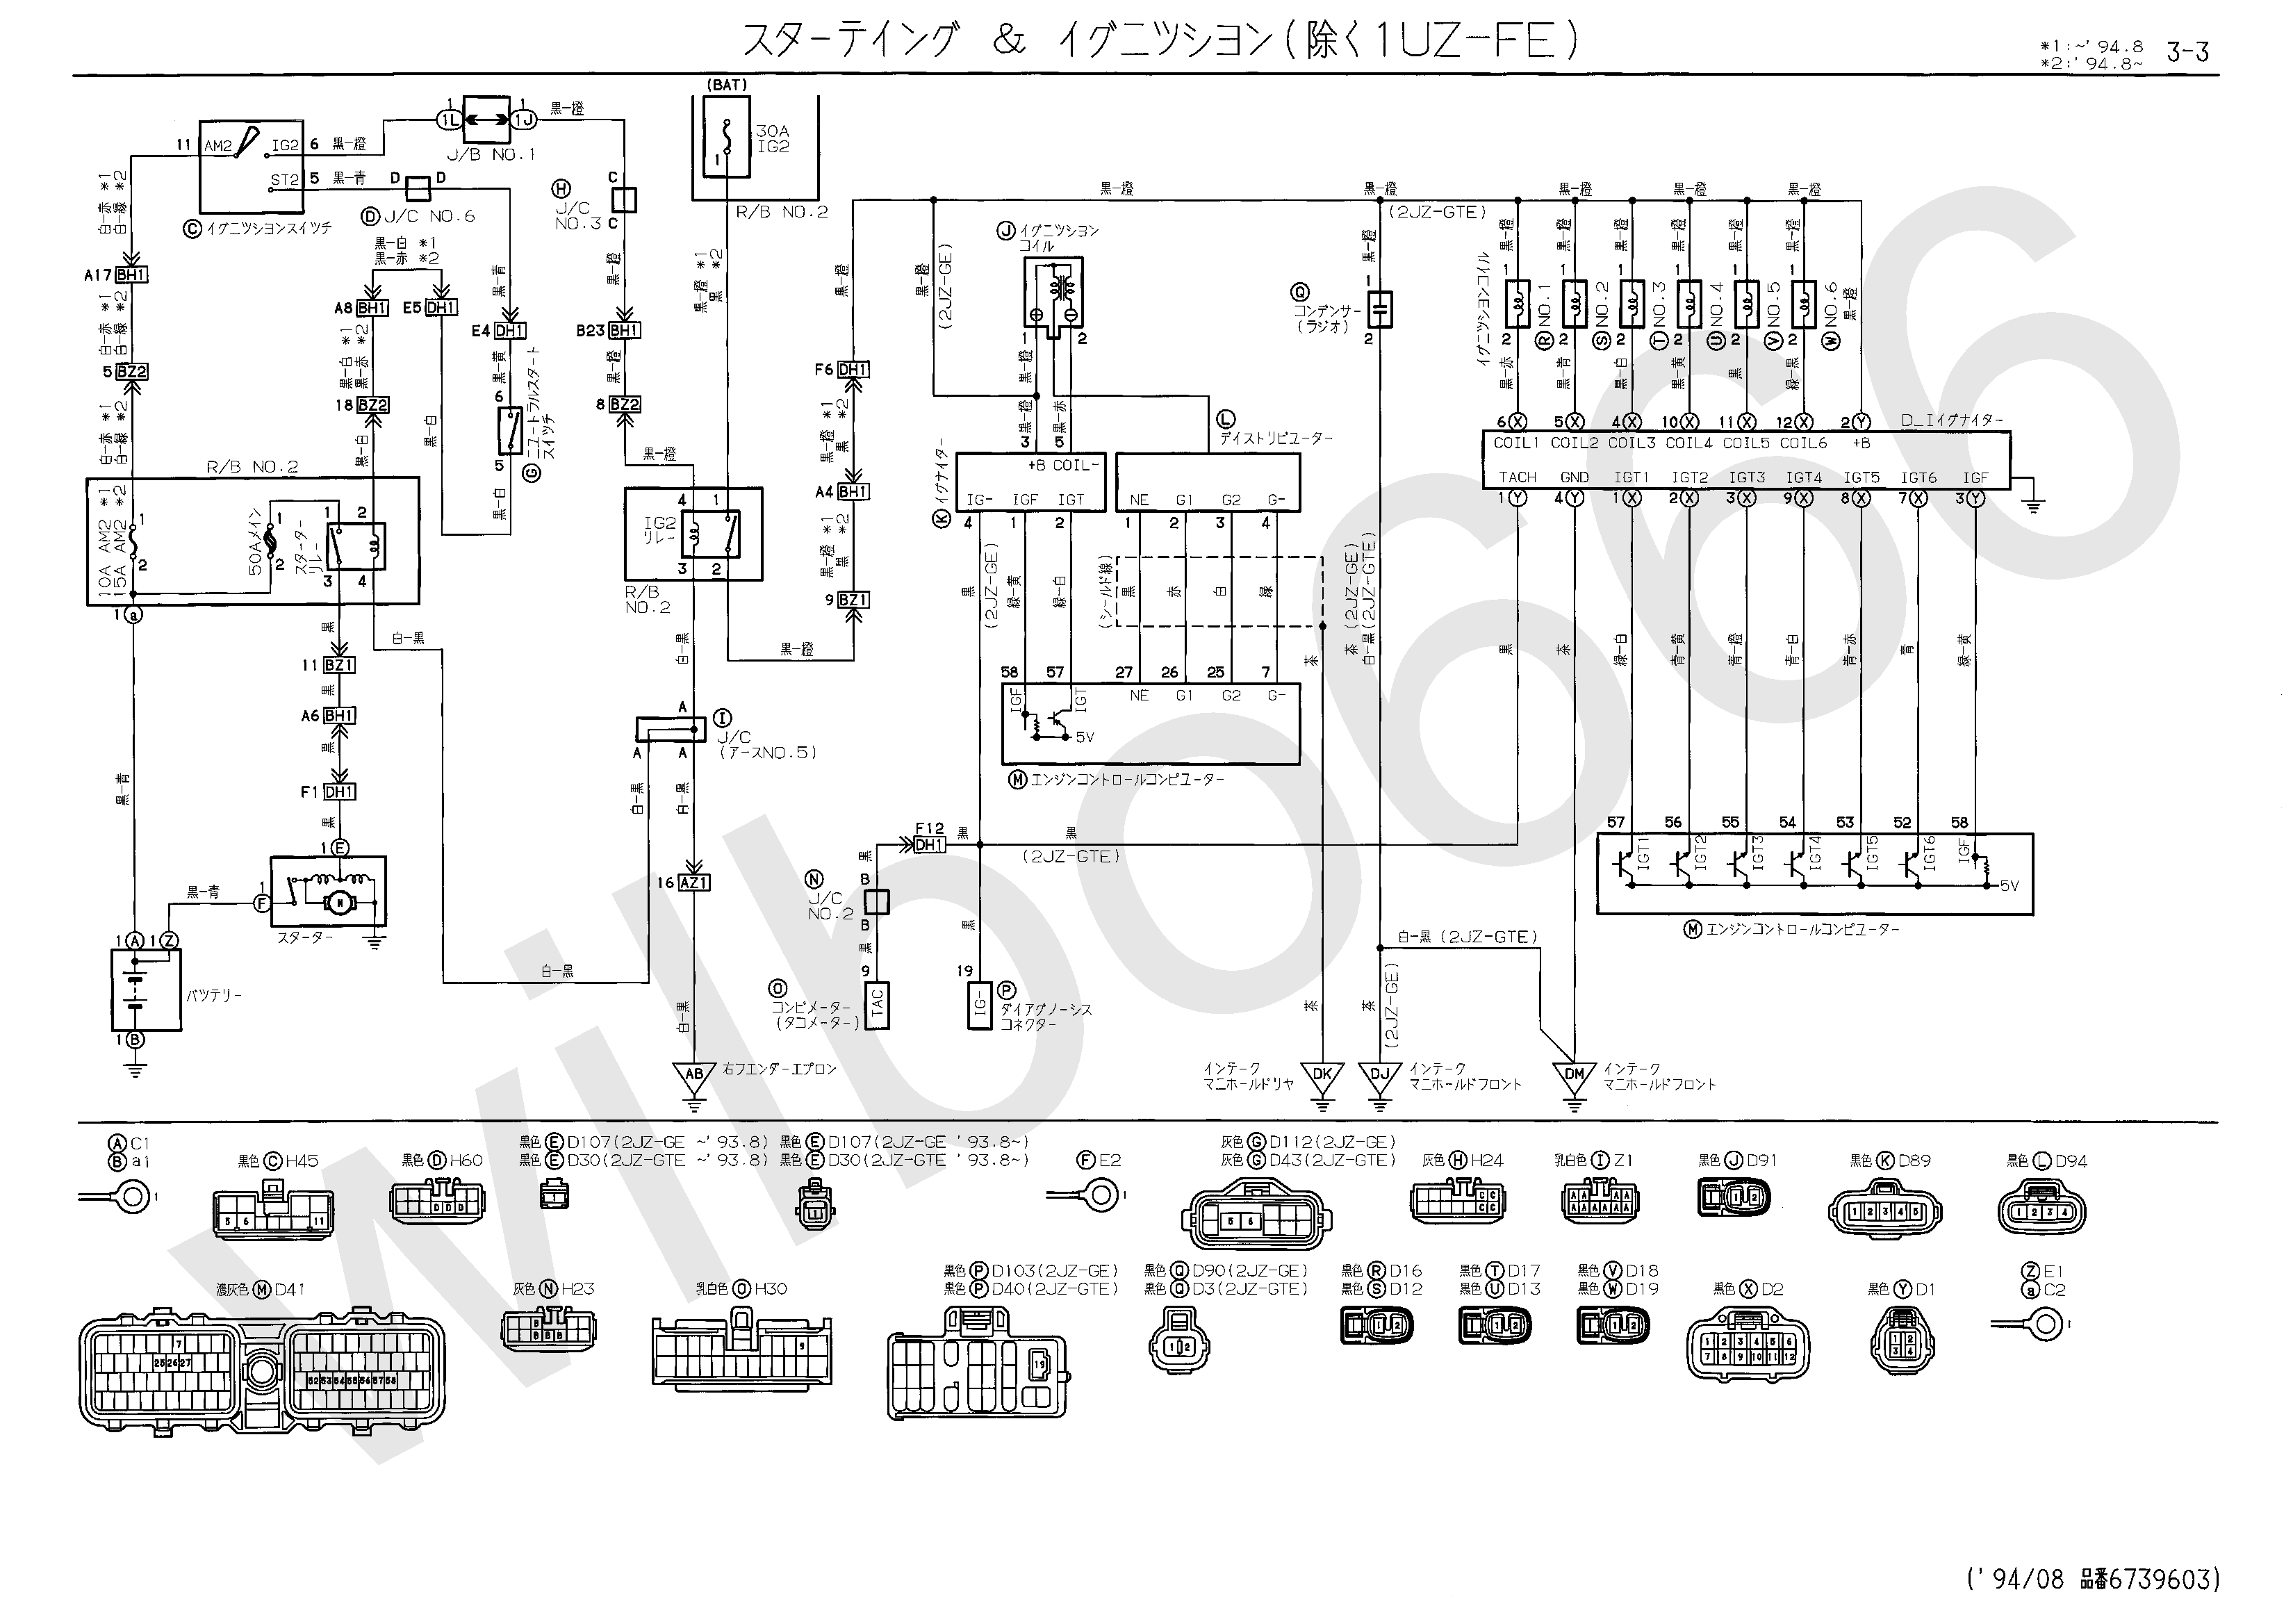 [DIAGRAM] 2007 Lexus Is 250 Wiring Diagram FULL Version HD